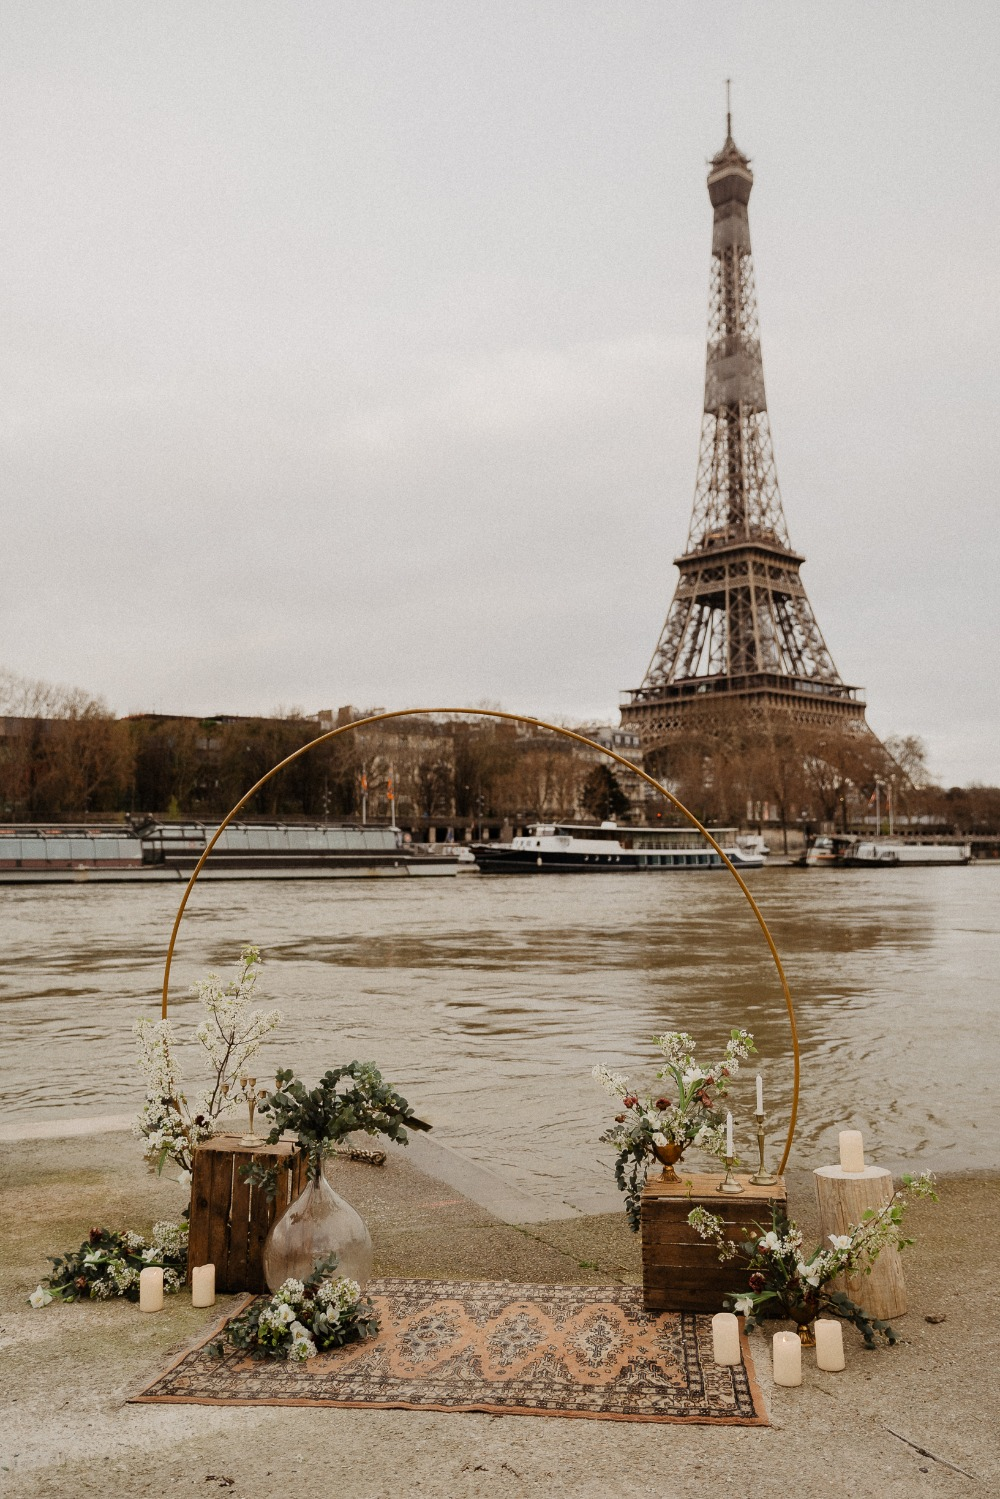 Elopement in France in front of the Seine River and The Eiffel Tower